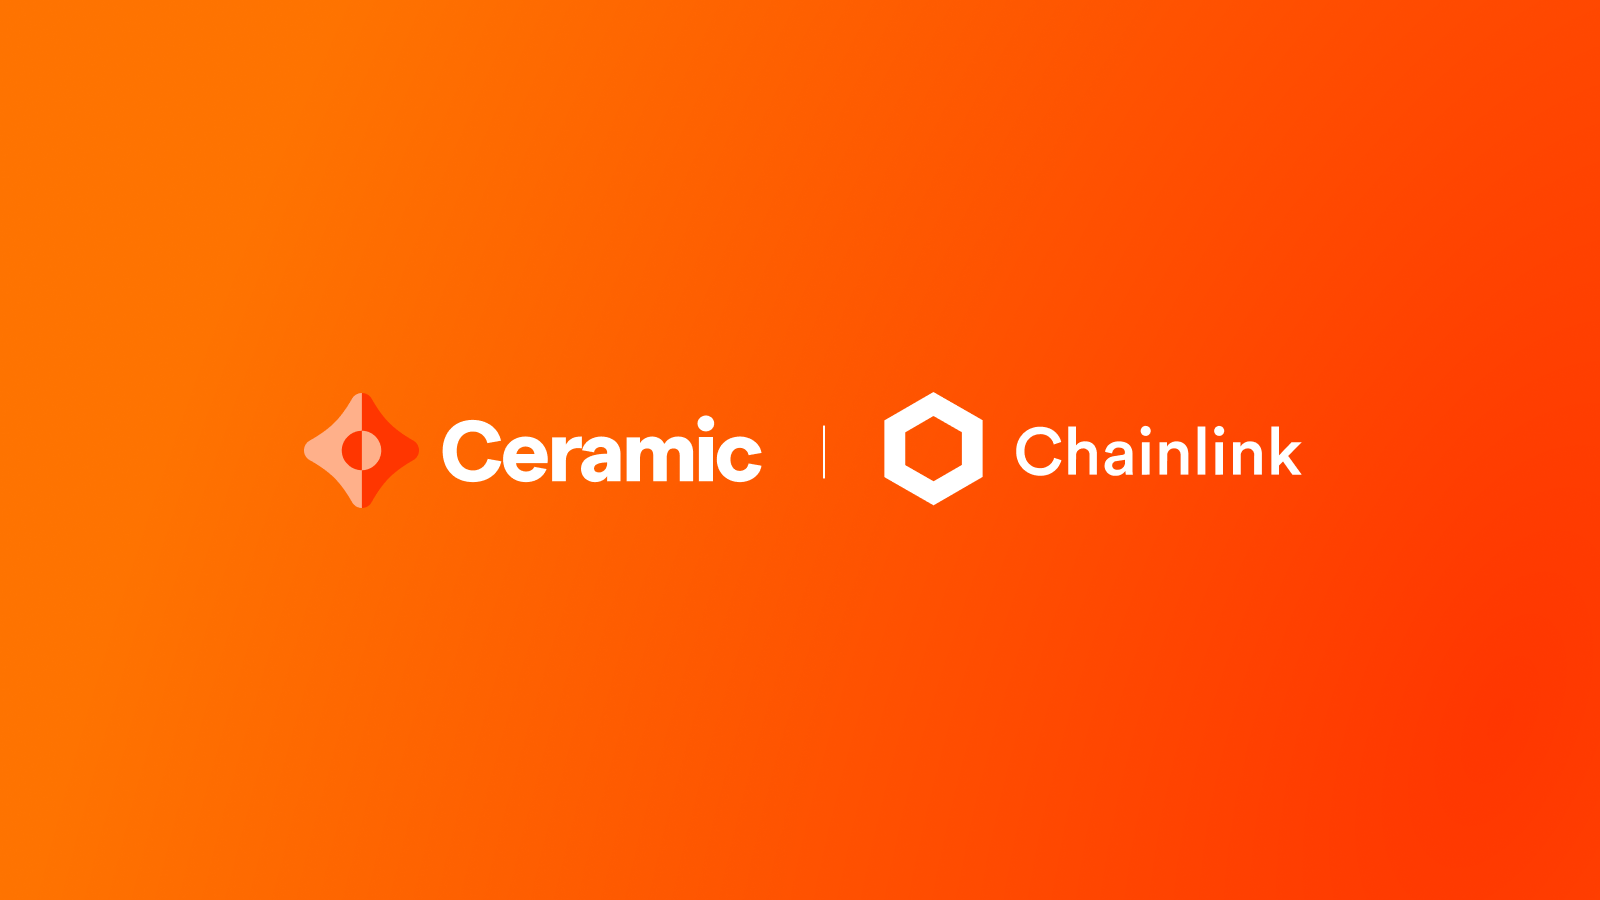 Ceramic + Chainlink VRF: the toolset for building more dynamic NFTs